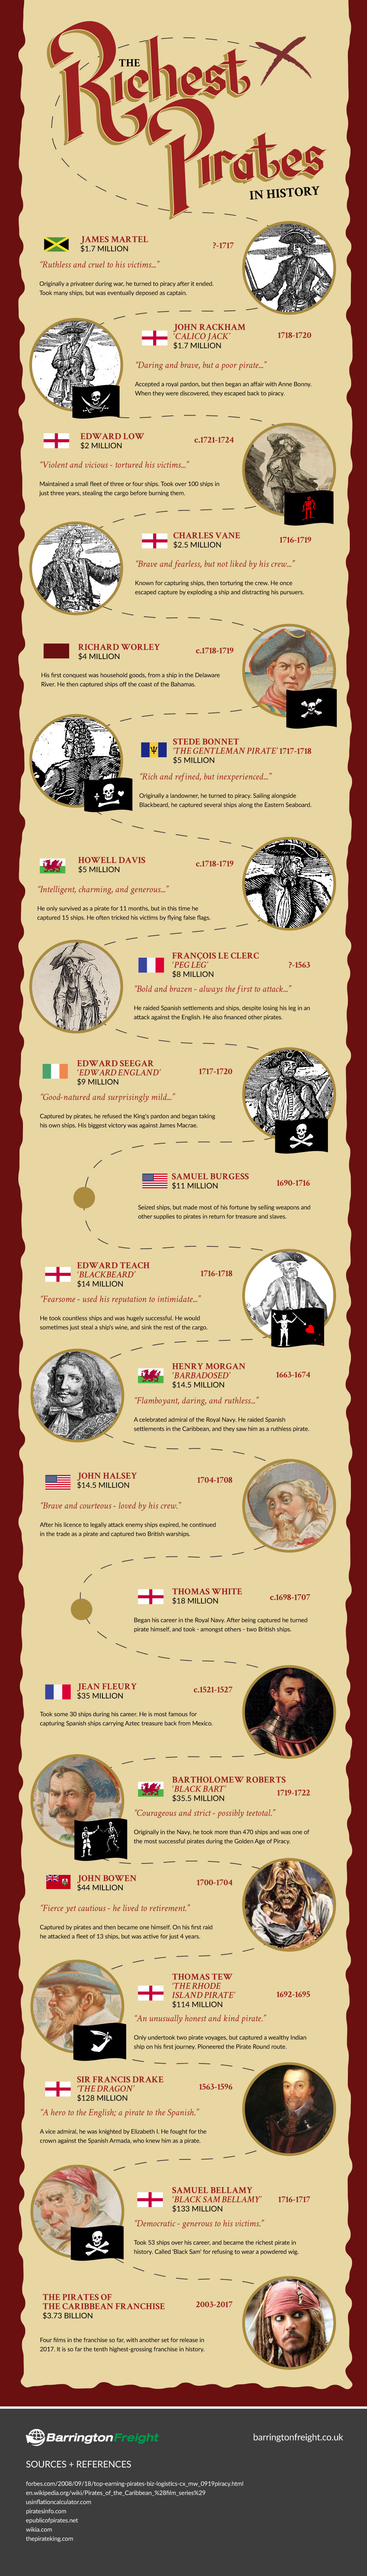 The Richest Pirates in History